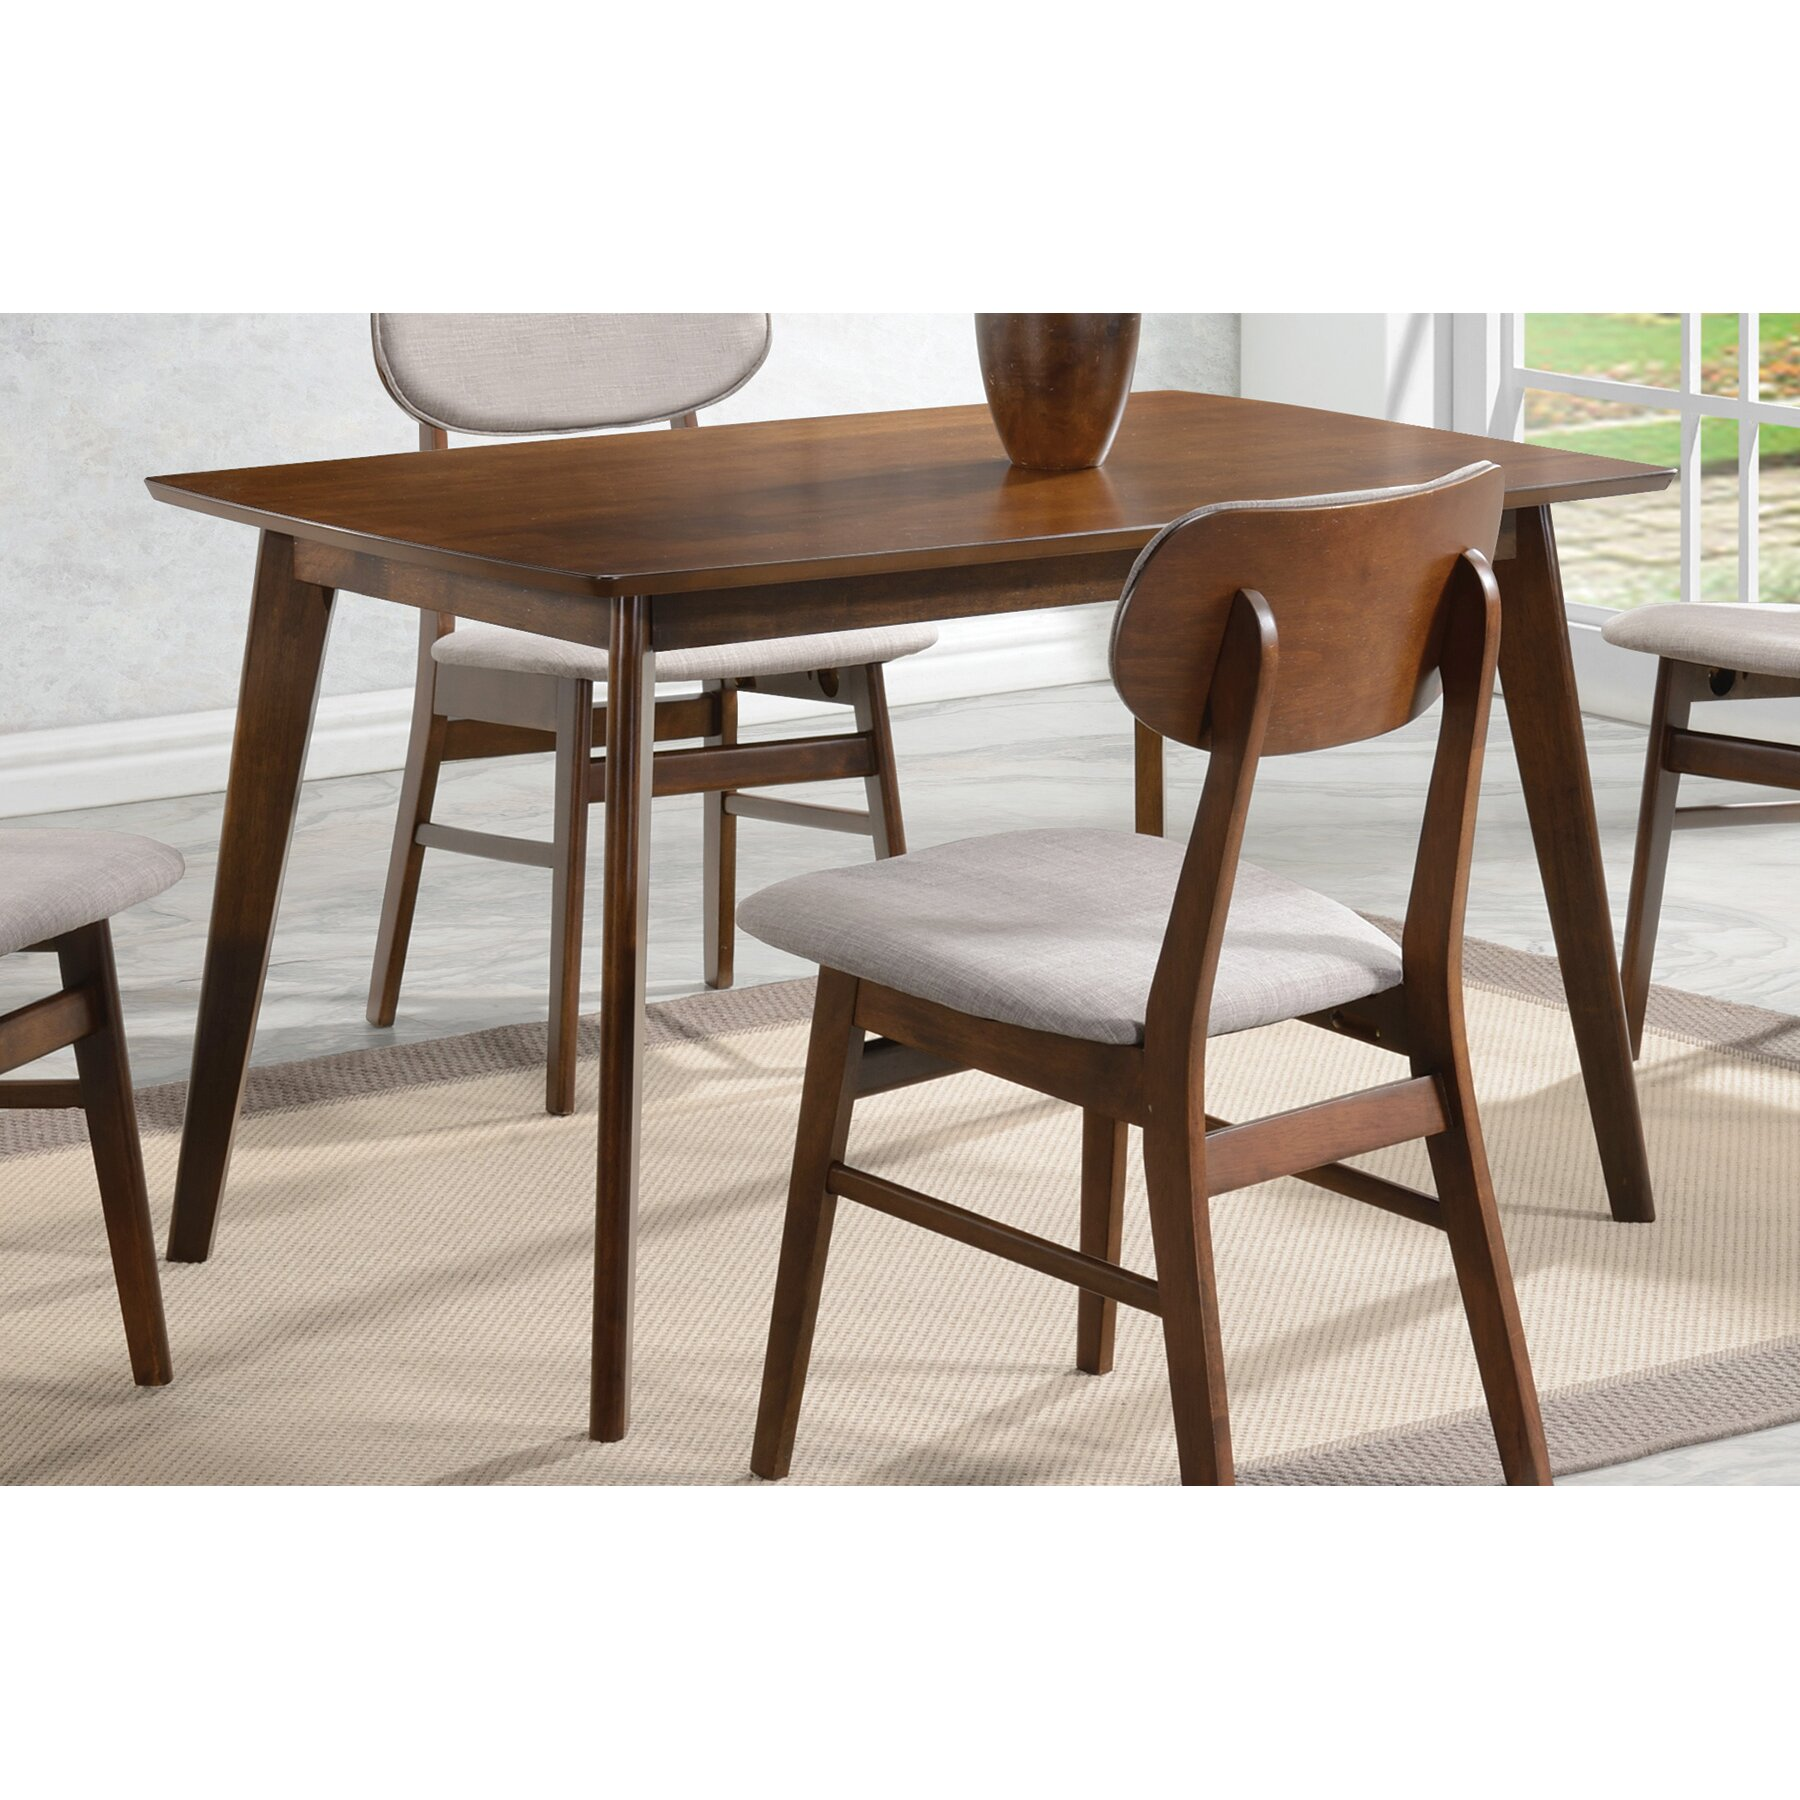 Wildon home kersey dining table reviews for Wayfair dining table